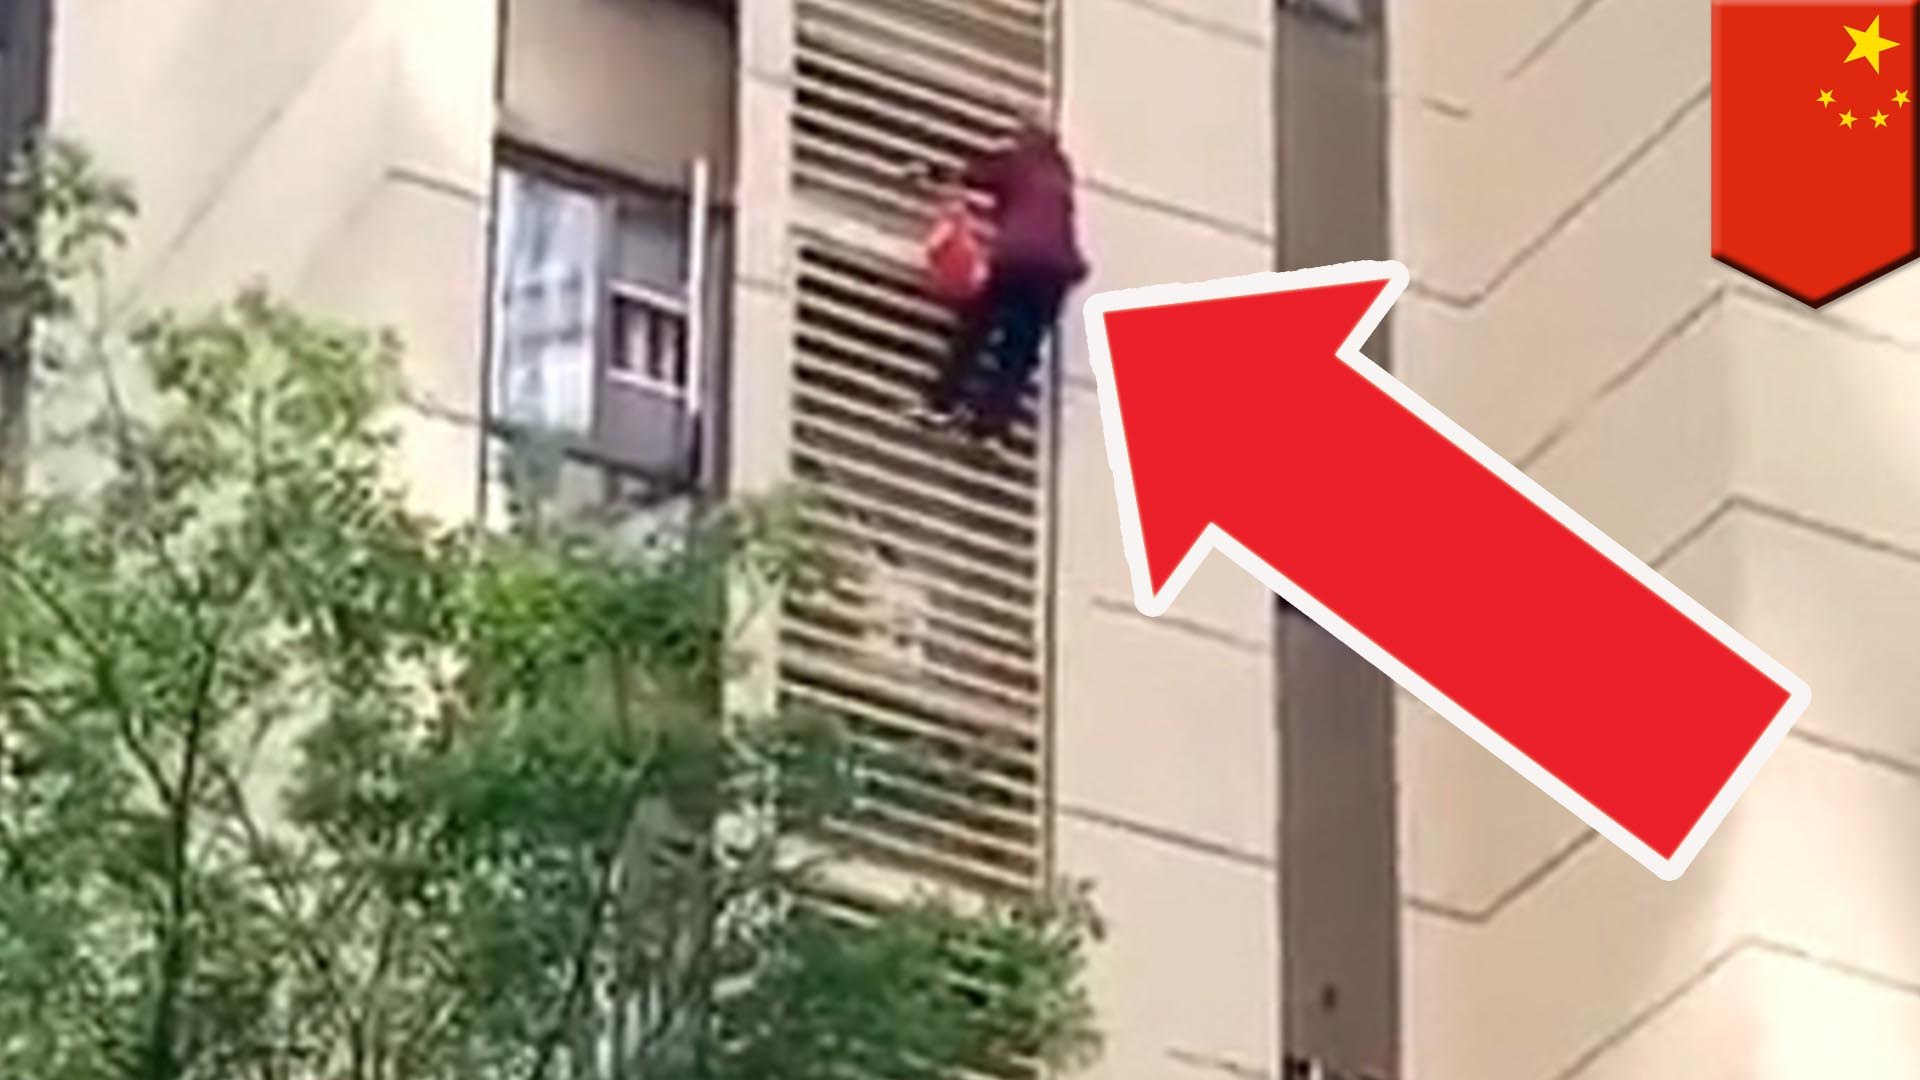 Chinese granny Spiderverses down high rise apartment